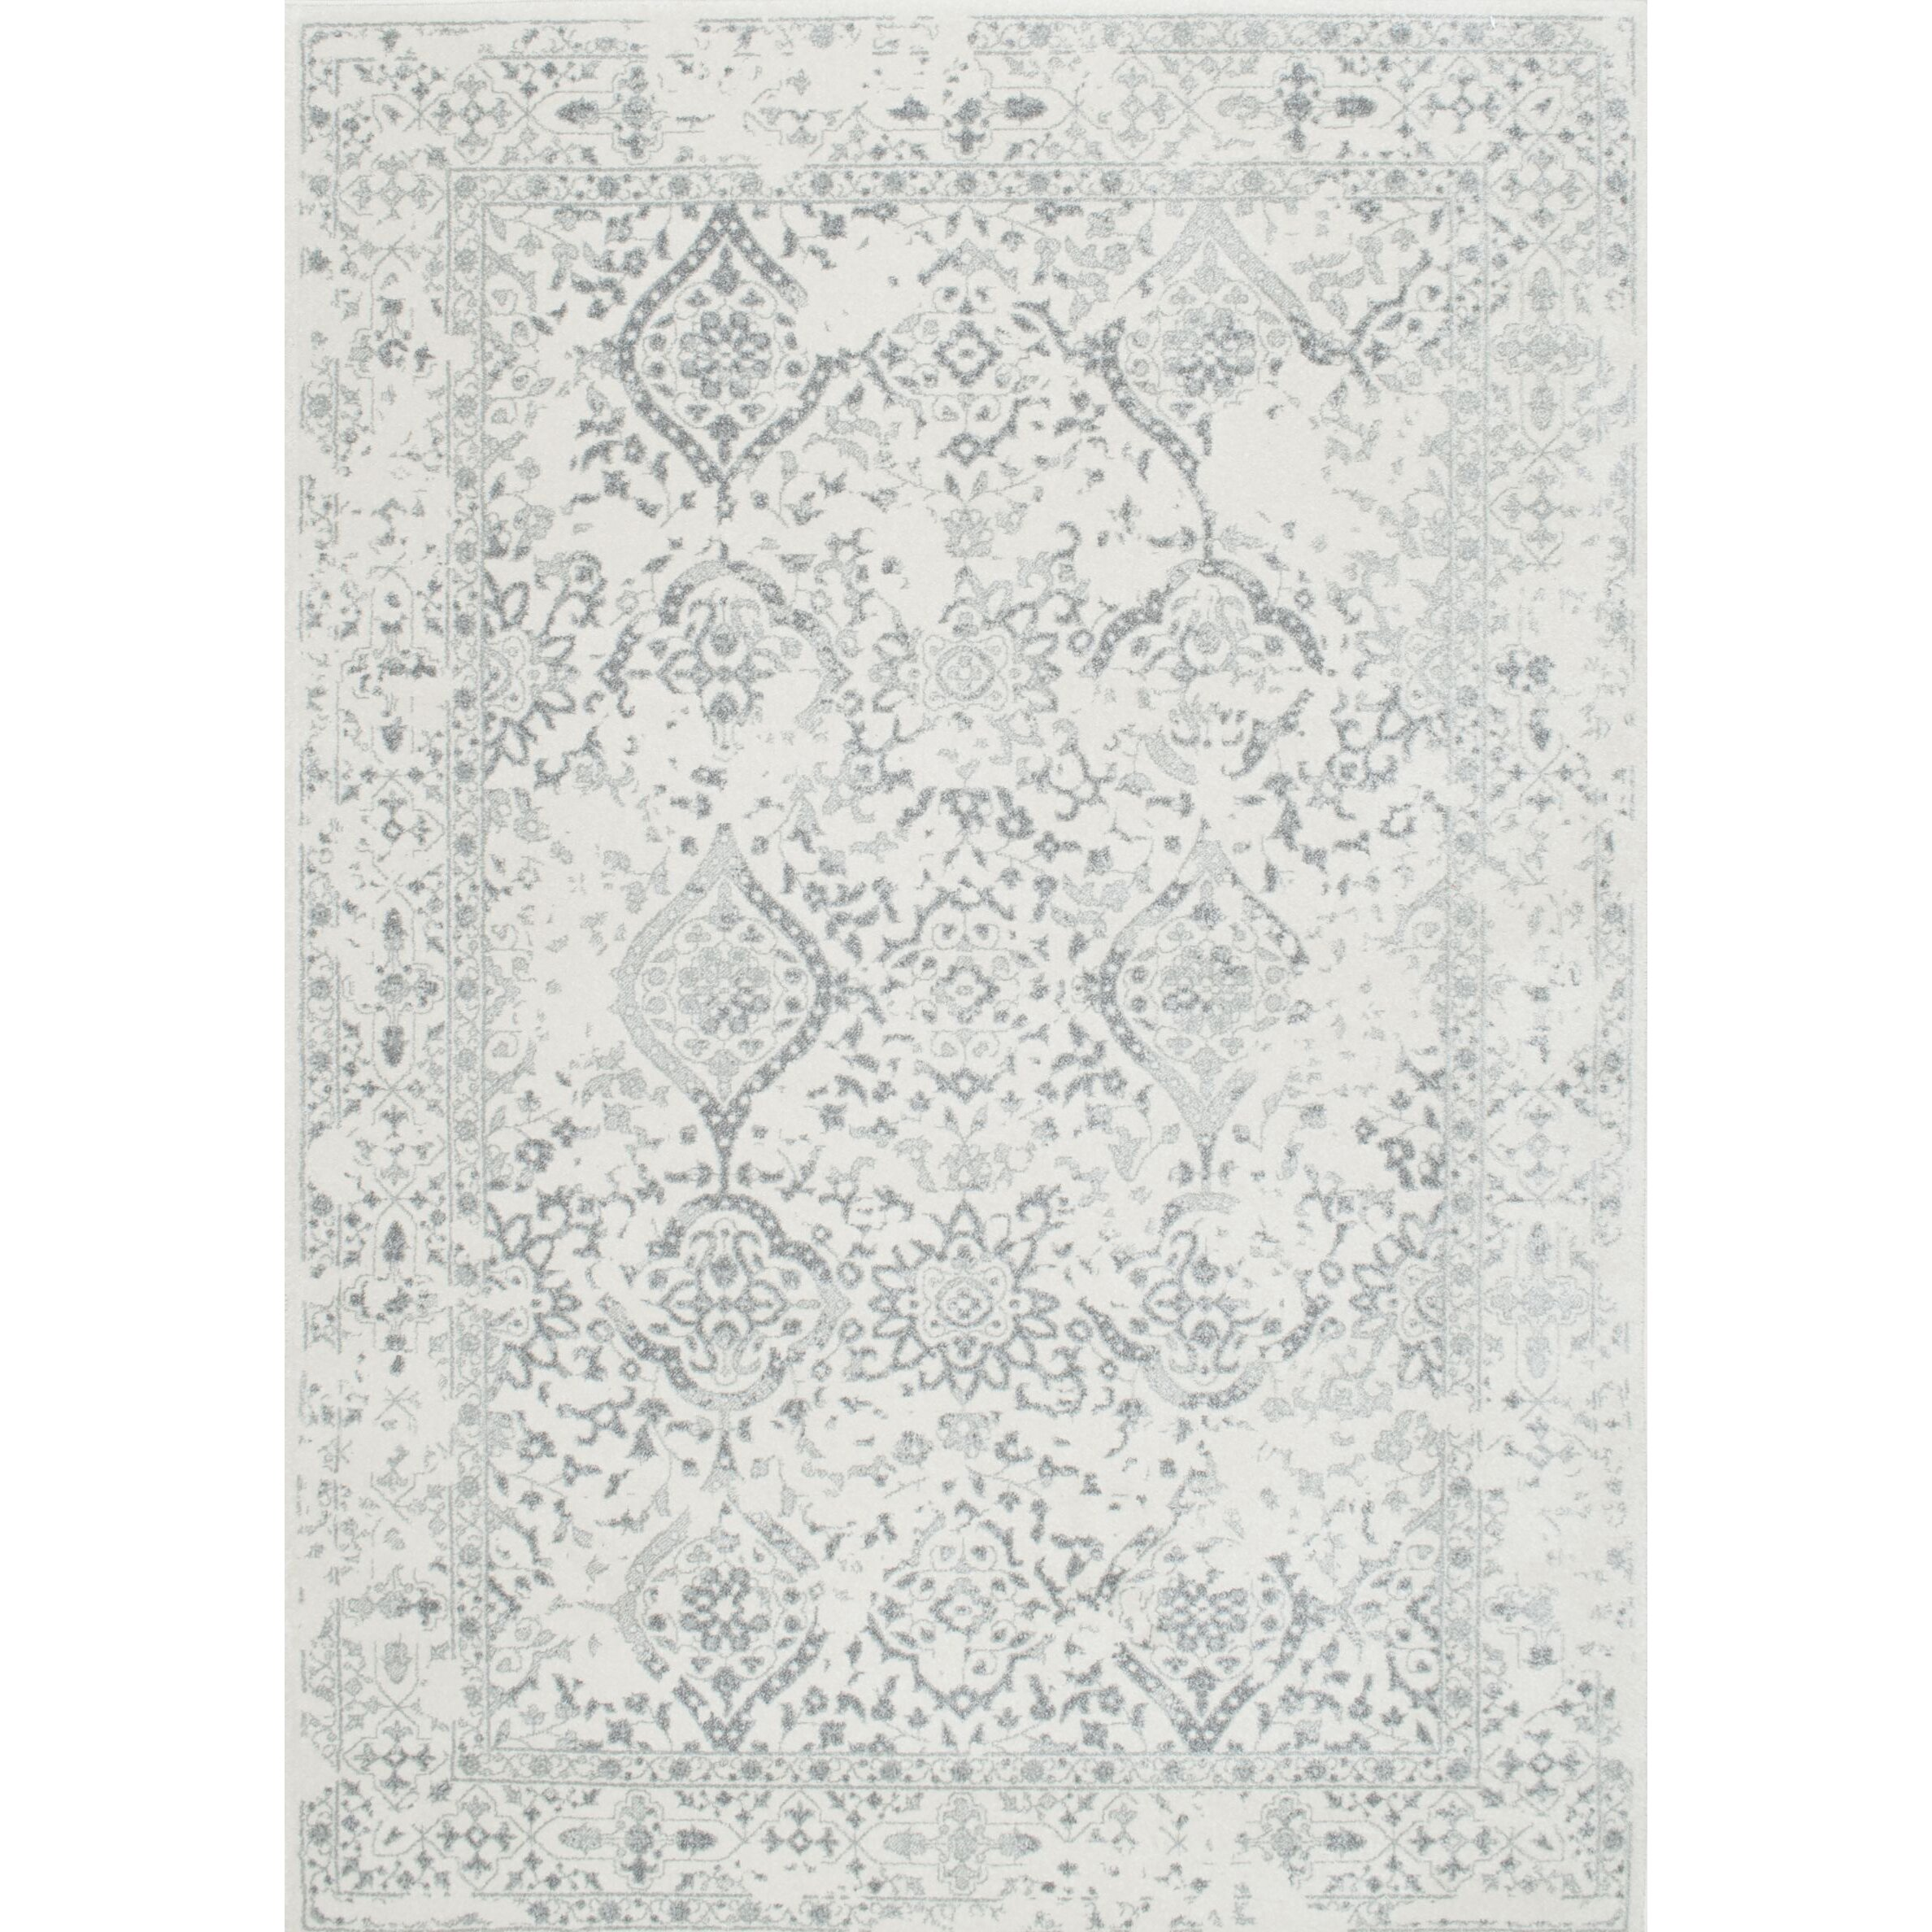 Nuloom vintage mabelle ivory grey area rug reviews wayfair for 15x15 living room